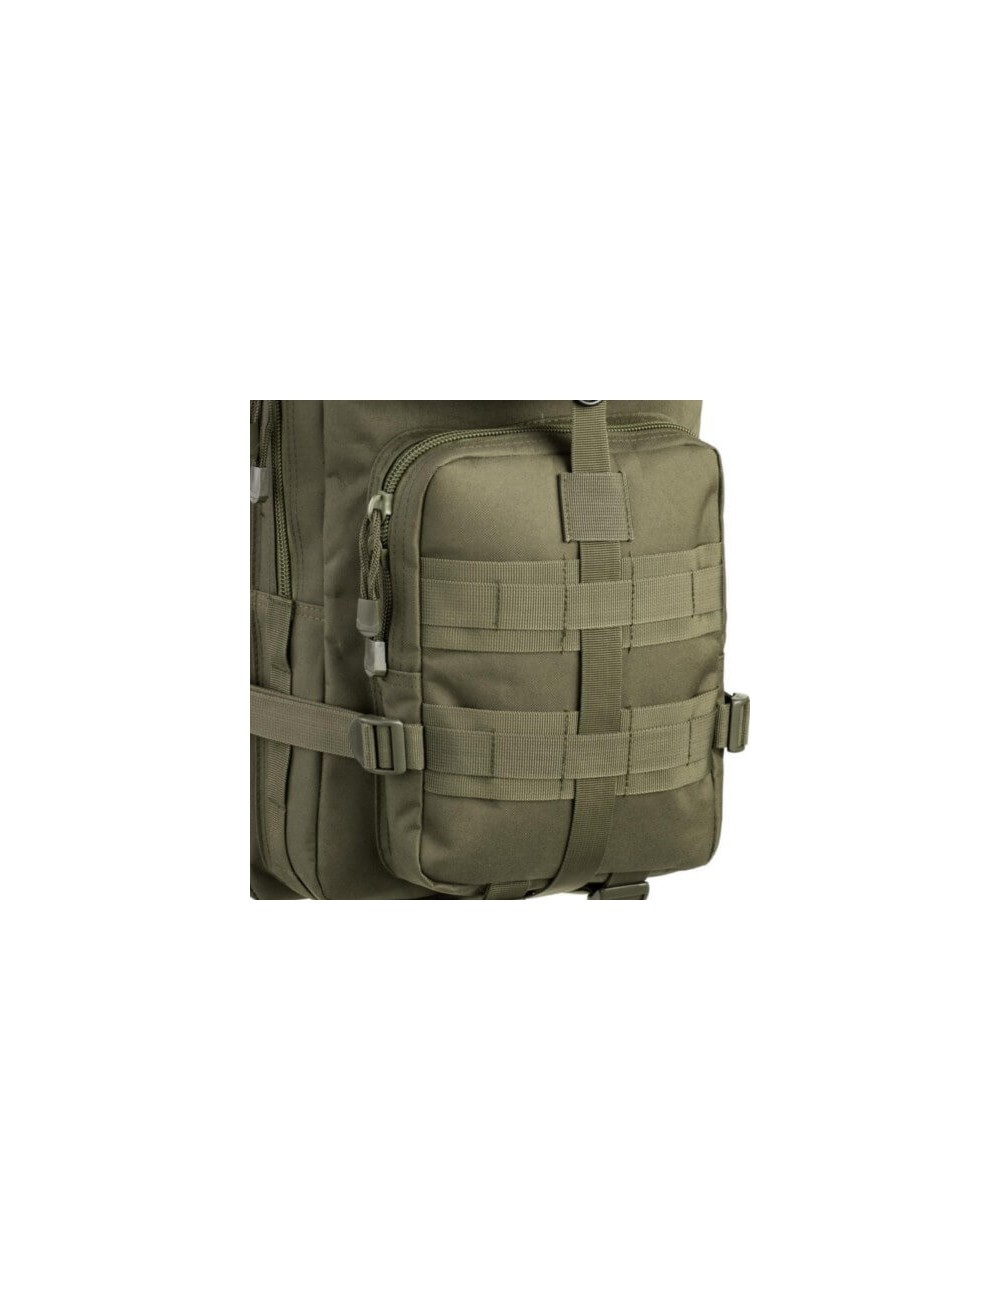 Defcon 5 rugzak Tactical backpack - Hydro compatible - 40 liter -Groen